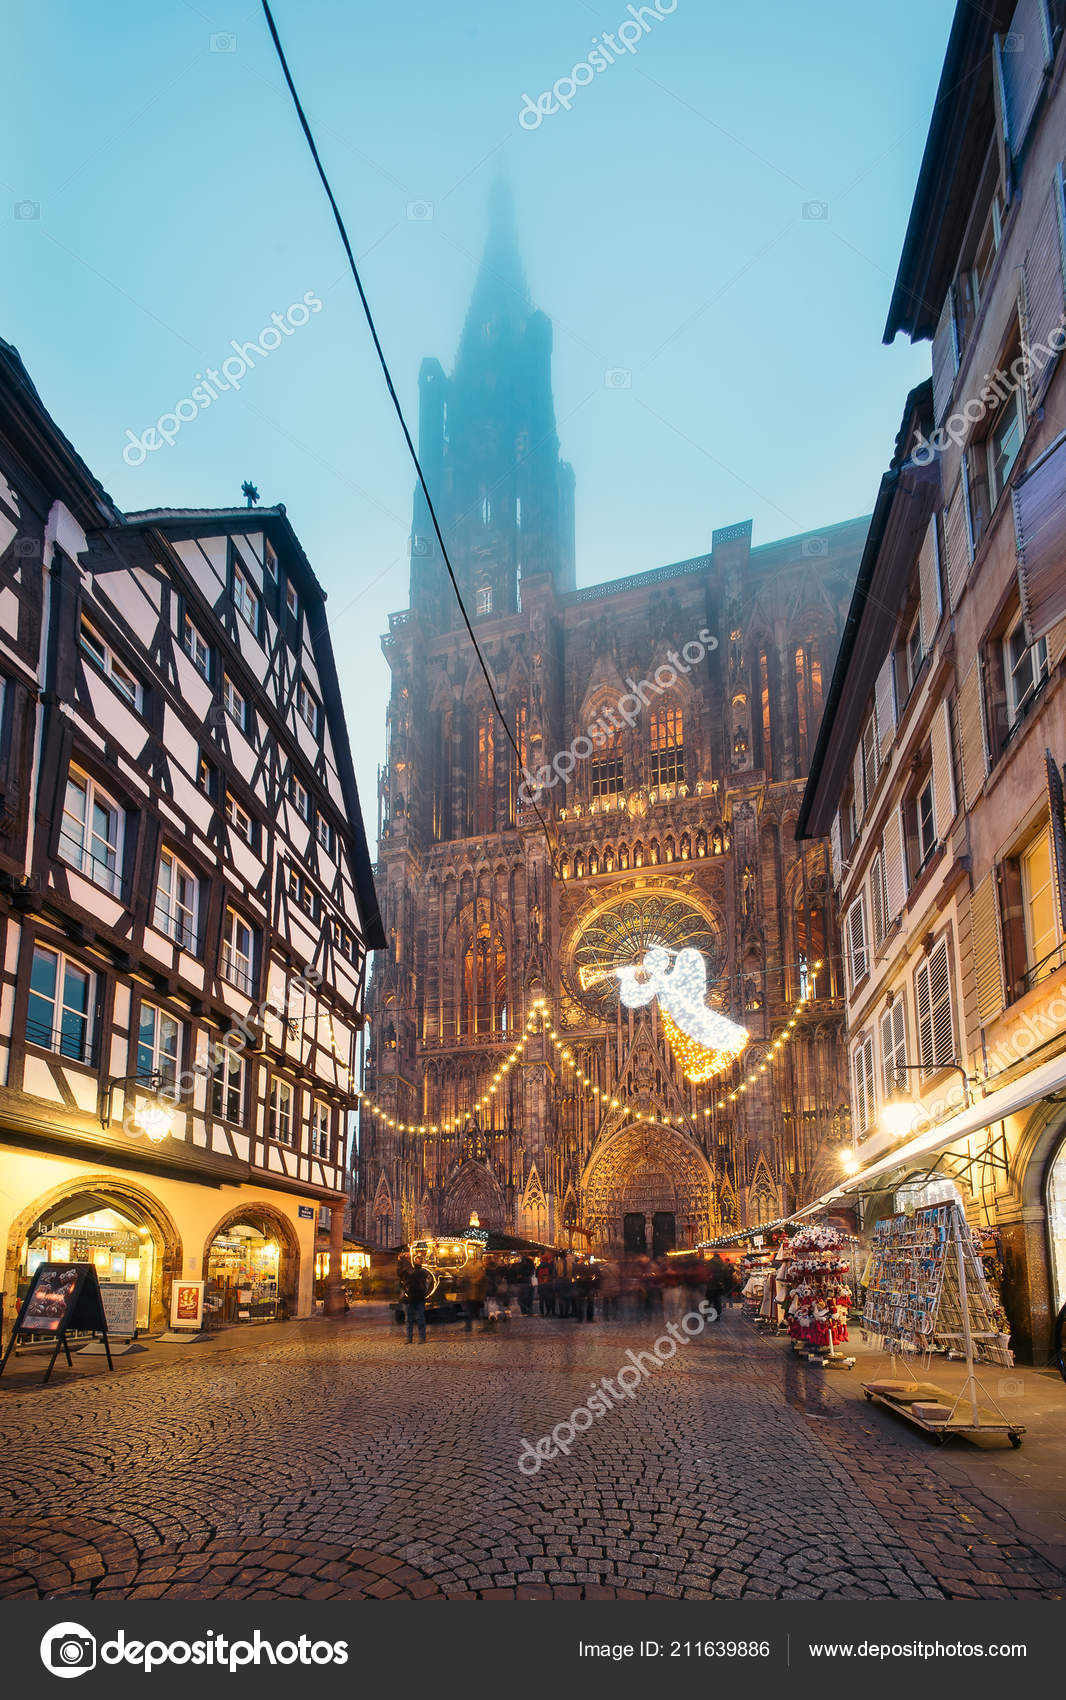 Strasbourg France Christmas Time.Strasbourg France December 2016 Our Lady Strasbourg